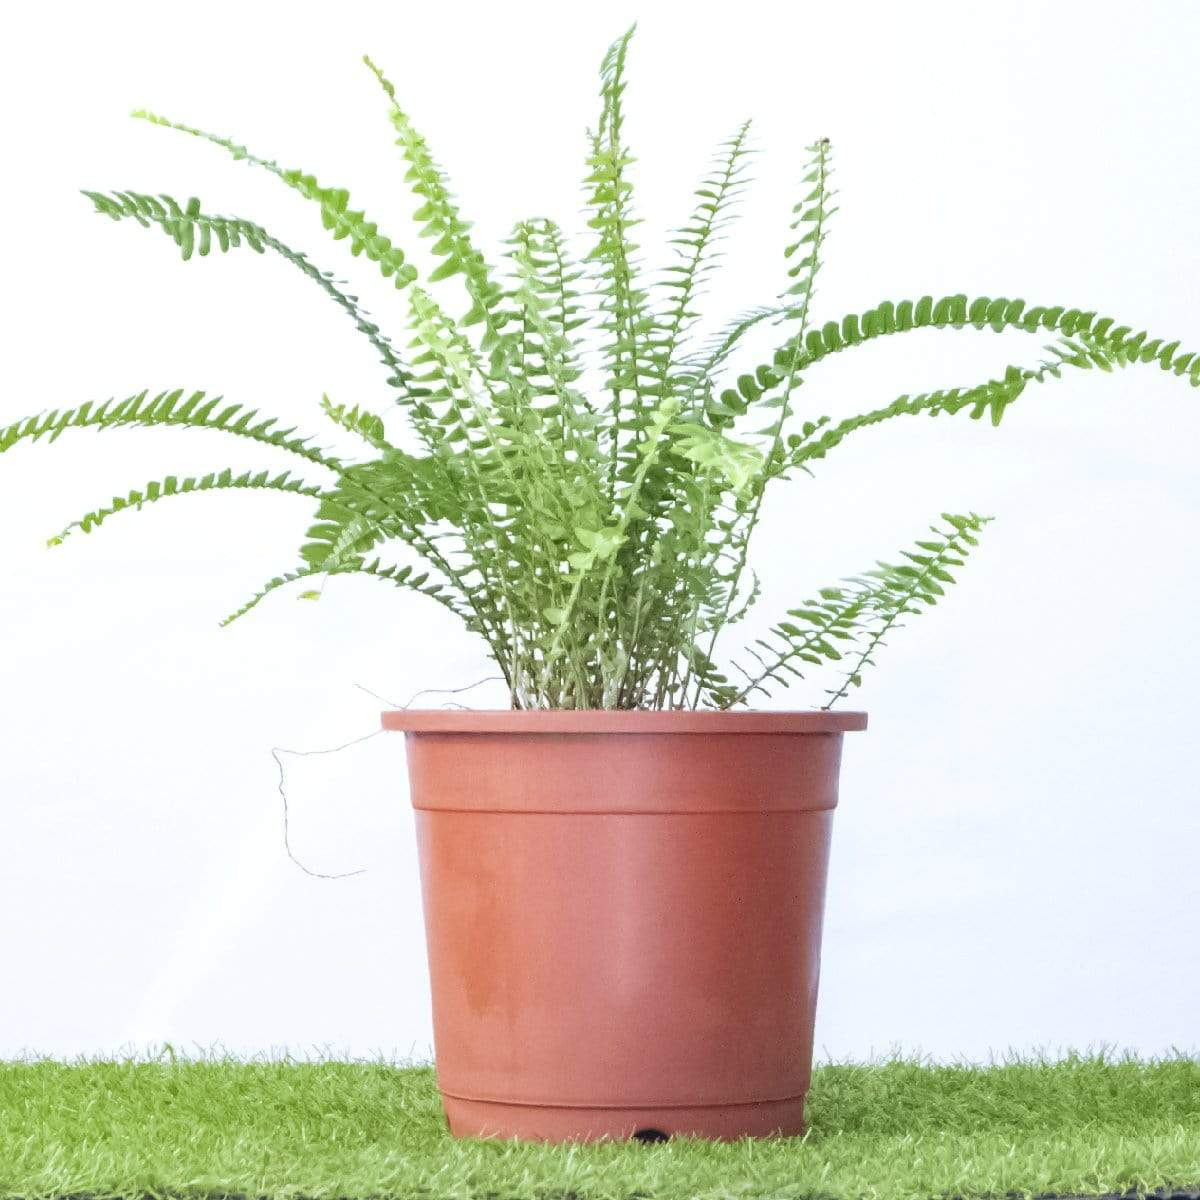 Sword Fern 'Green Lady' - Jagtap Nursery's Garden Center